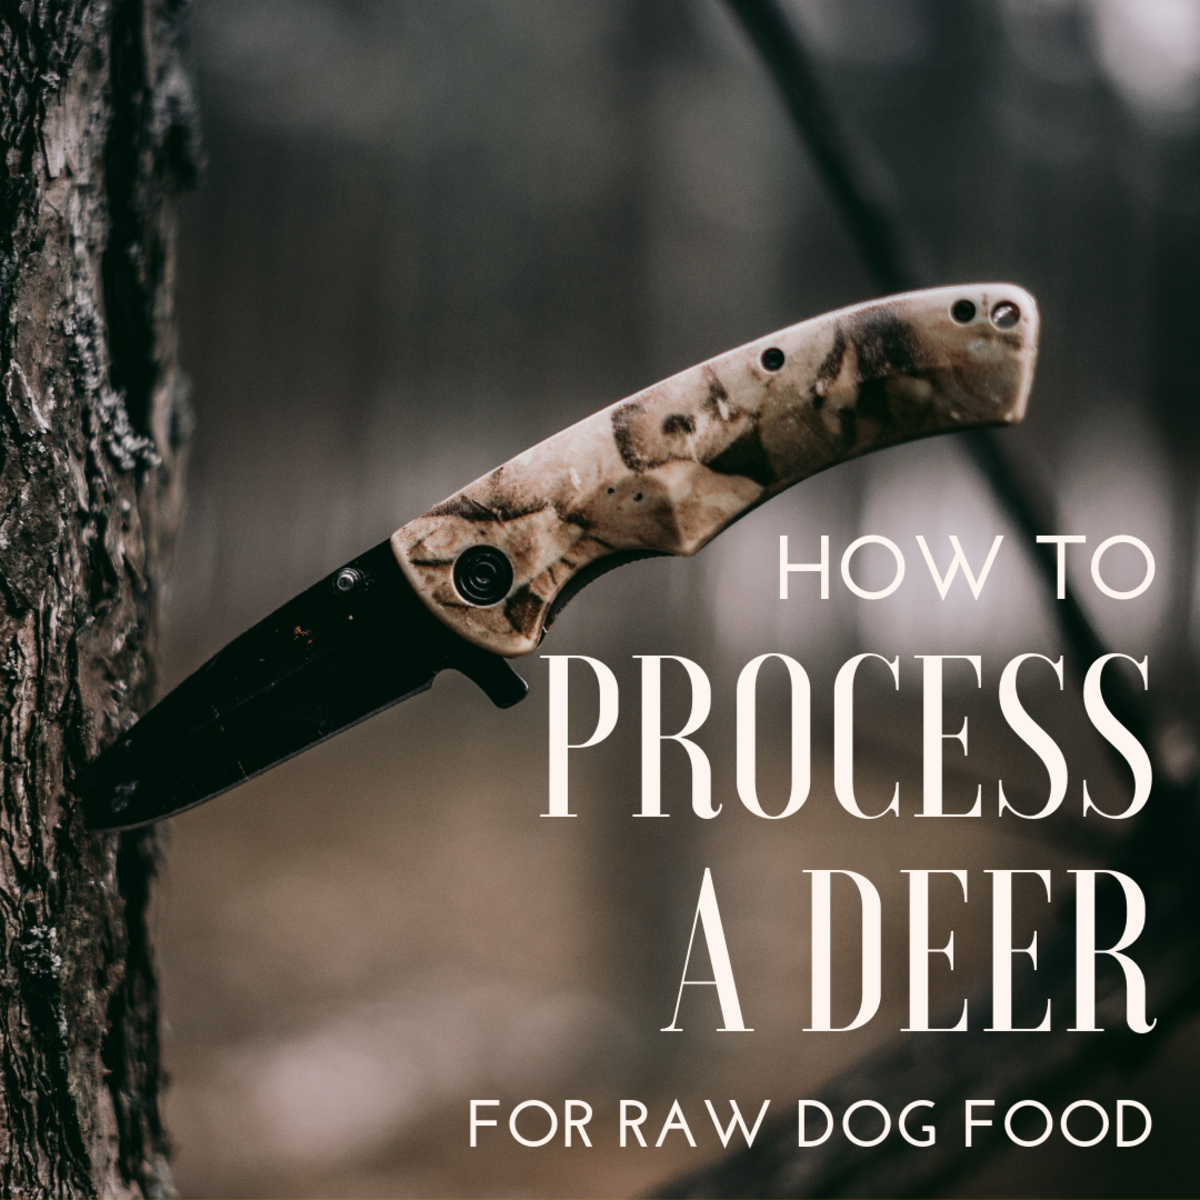 How to process a deer for dog food.